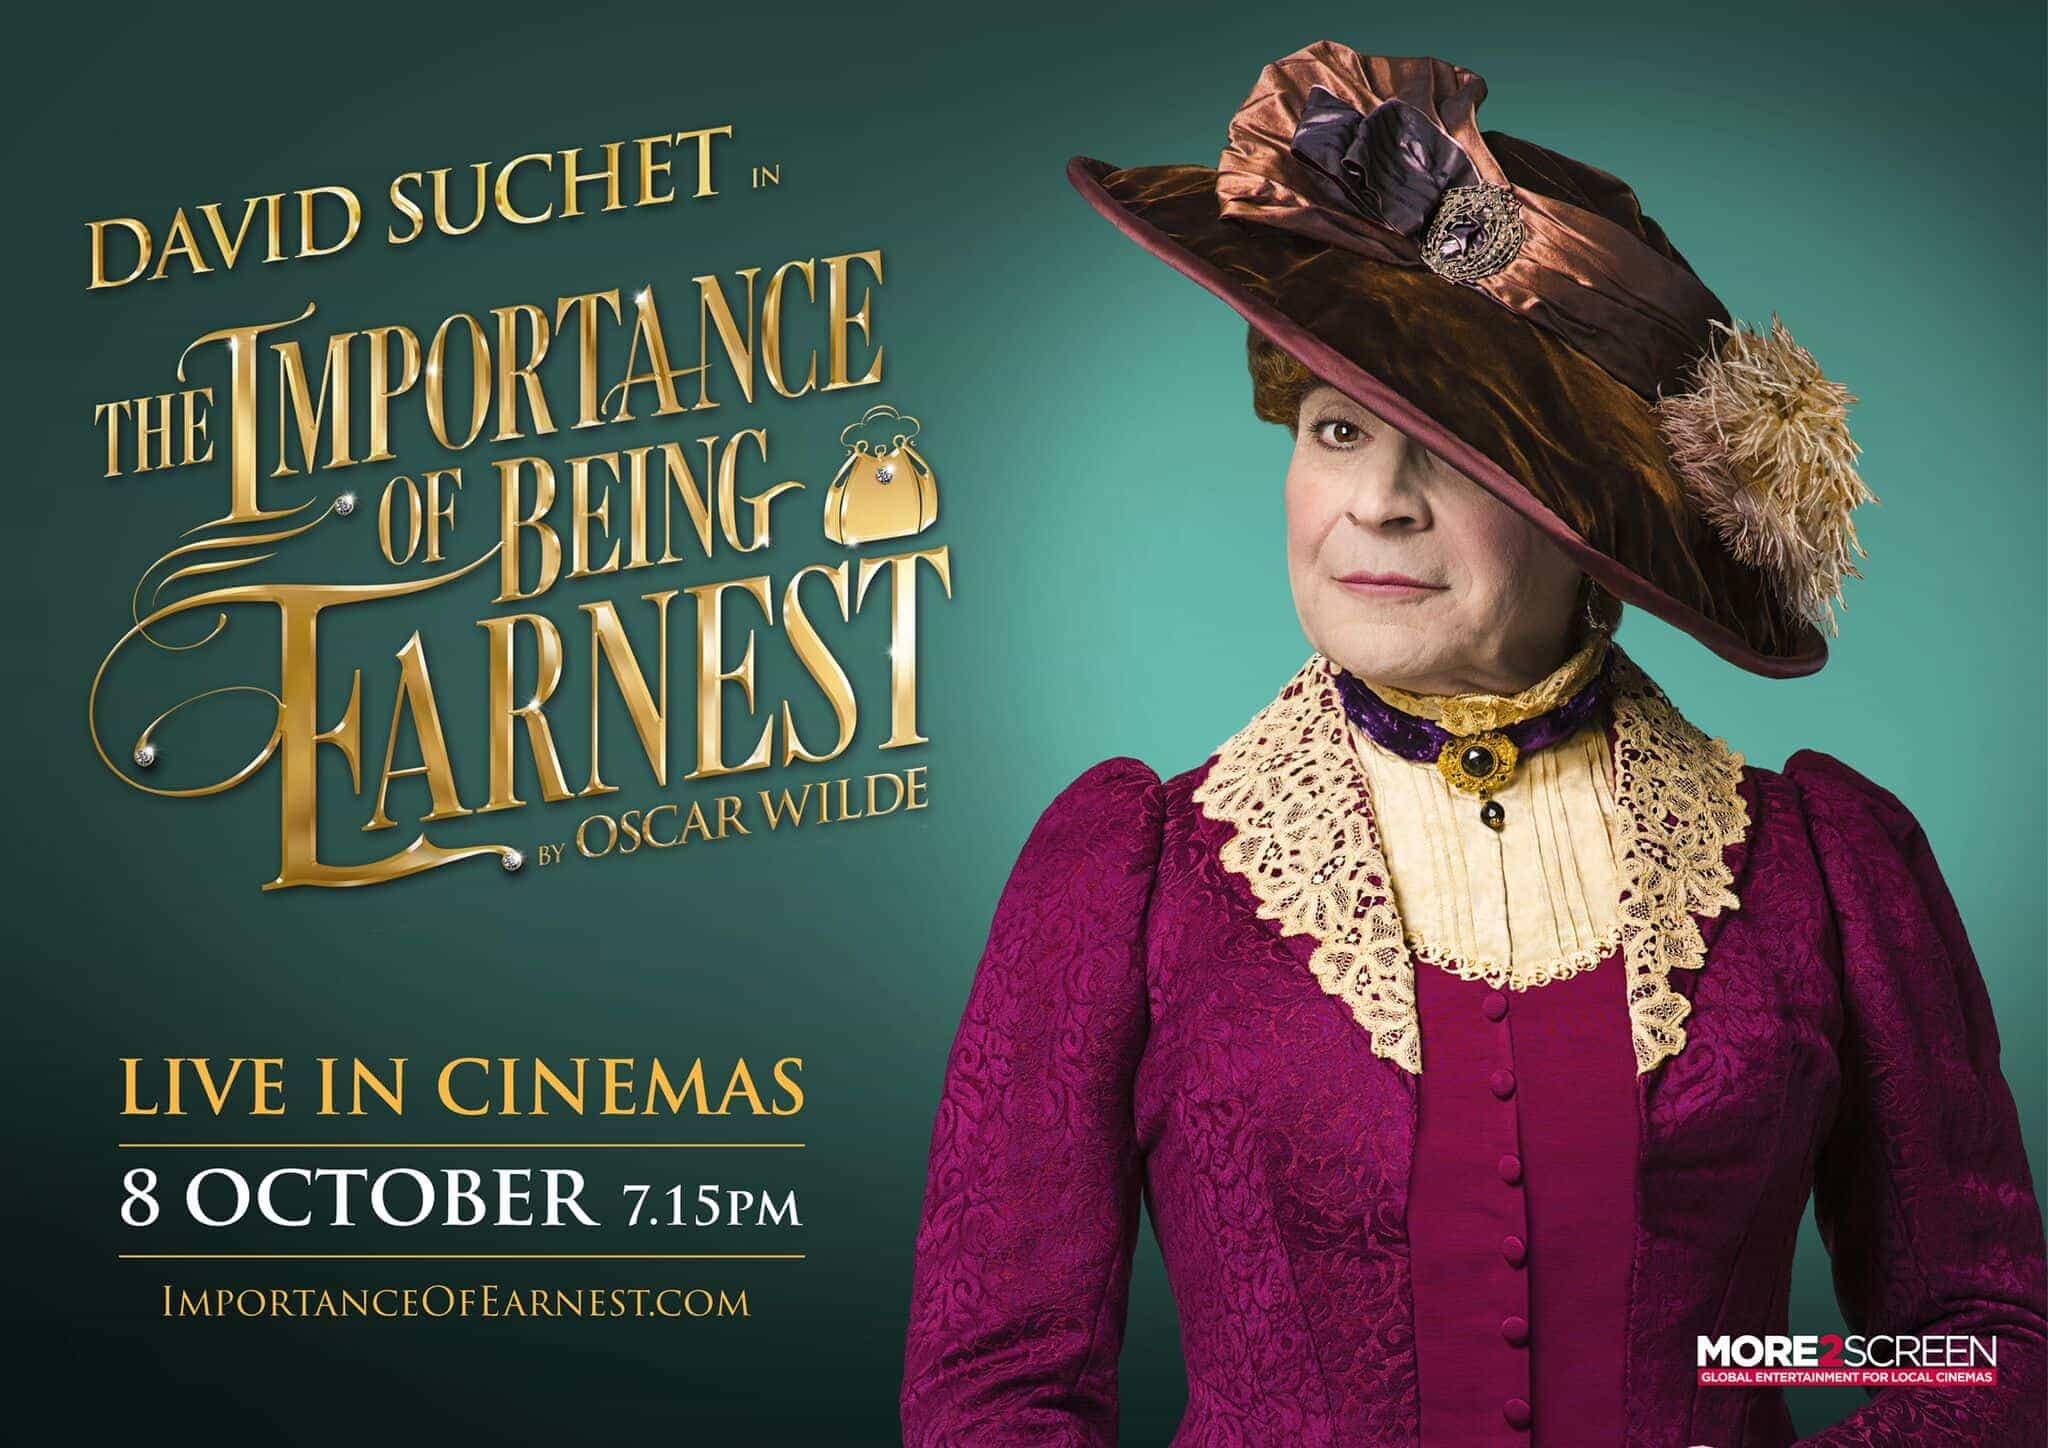 The Importance of Being Earnest Live 2015